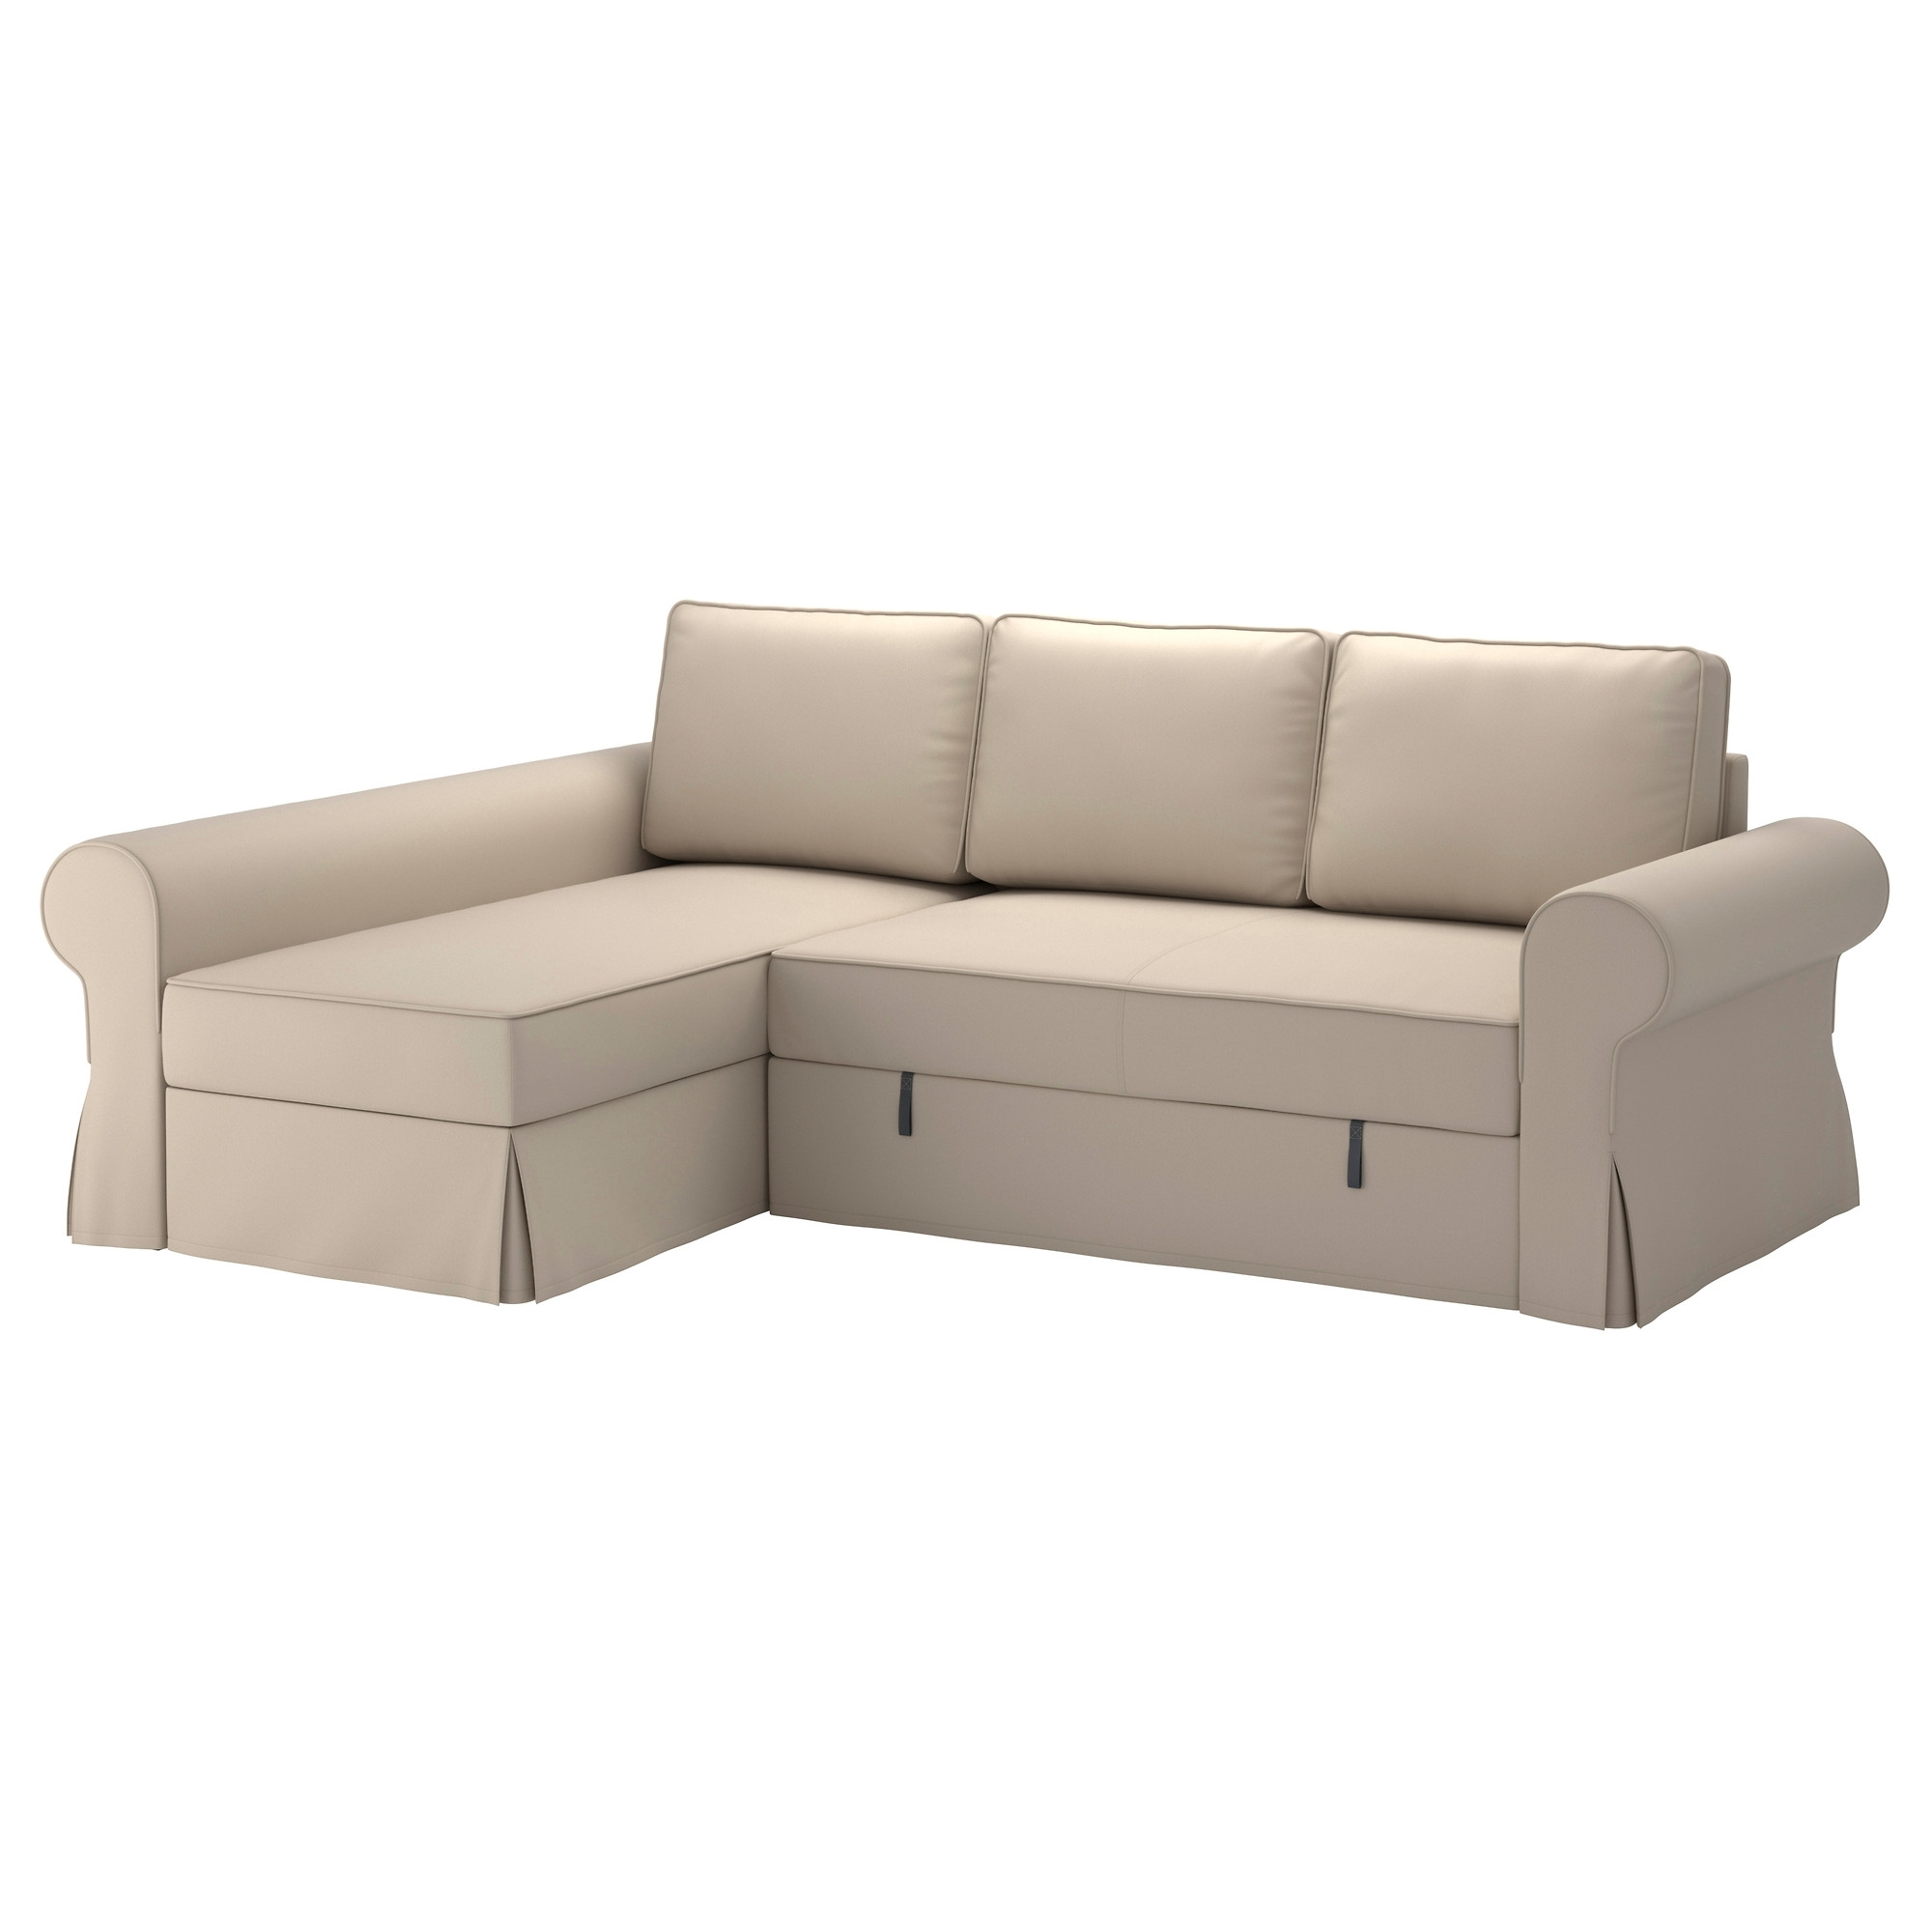 Backabro Cover Sofa Bed With Chaise Longue Ramna Beige – Ikea Inside Ikea Sectional Sofa Beds (View 9 of 10)